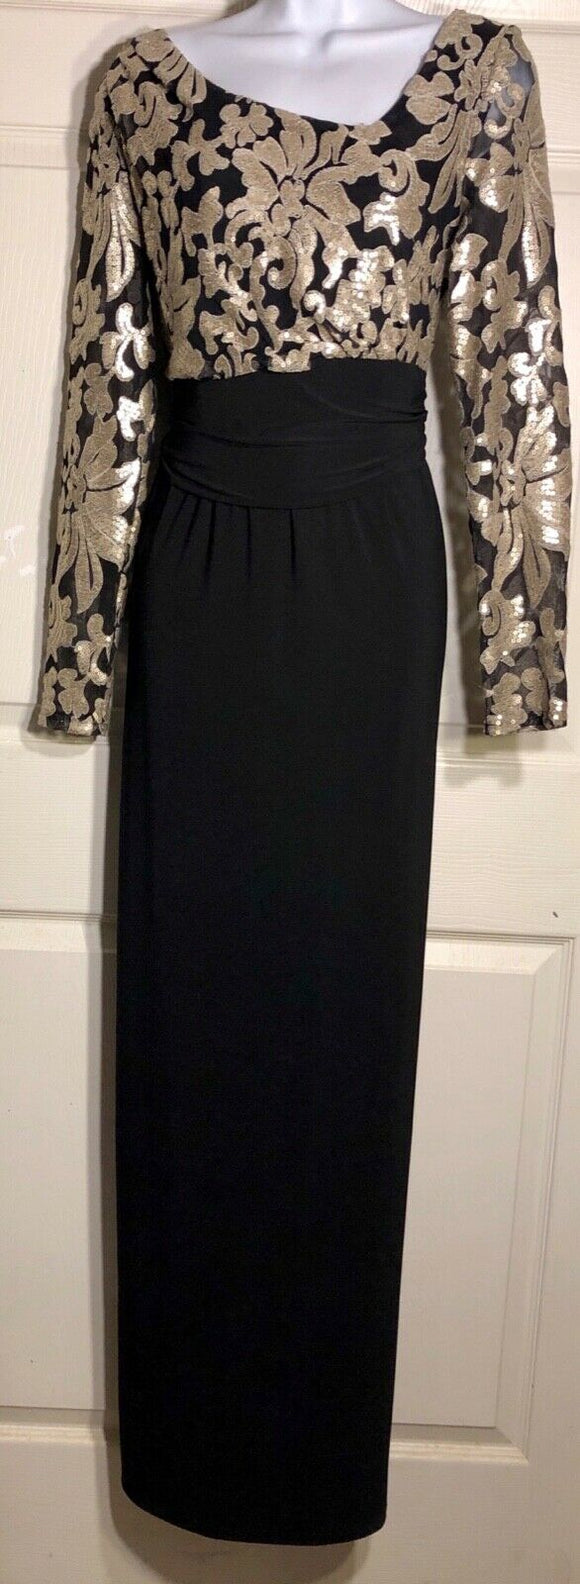 NWOT URSULA OF SWITZERLAND GOLD SEQUINZ BLACK CREPE GOWN SIZE 8 - Outlet Values